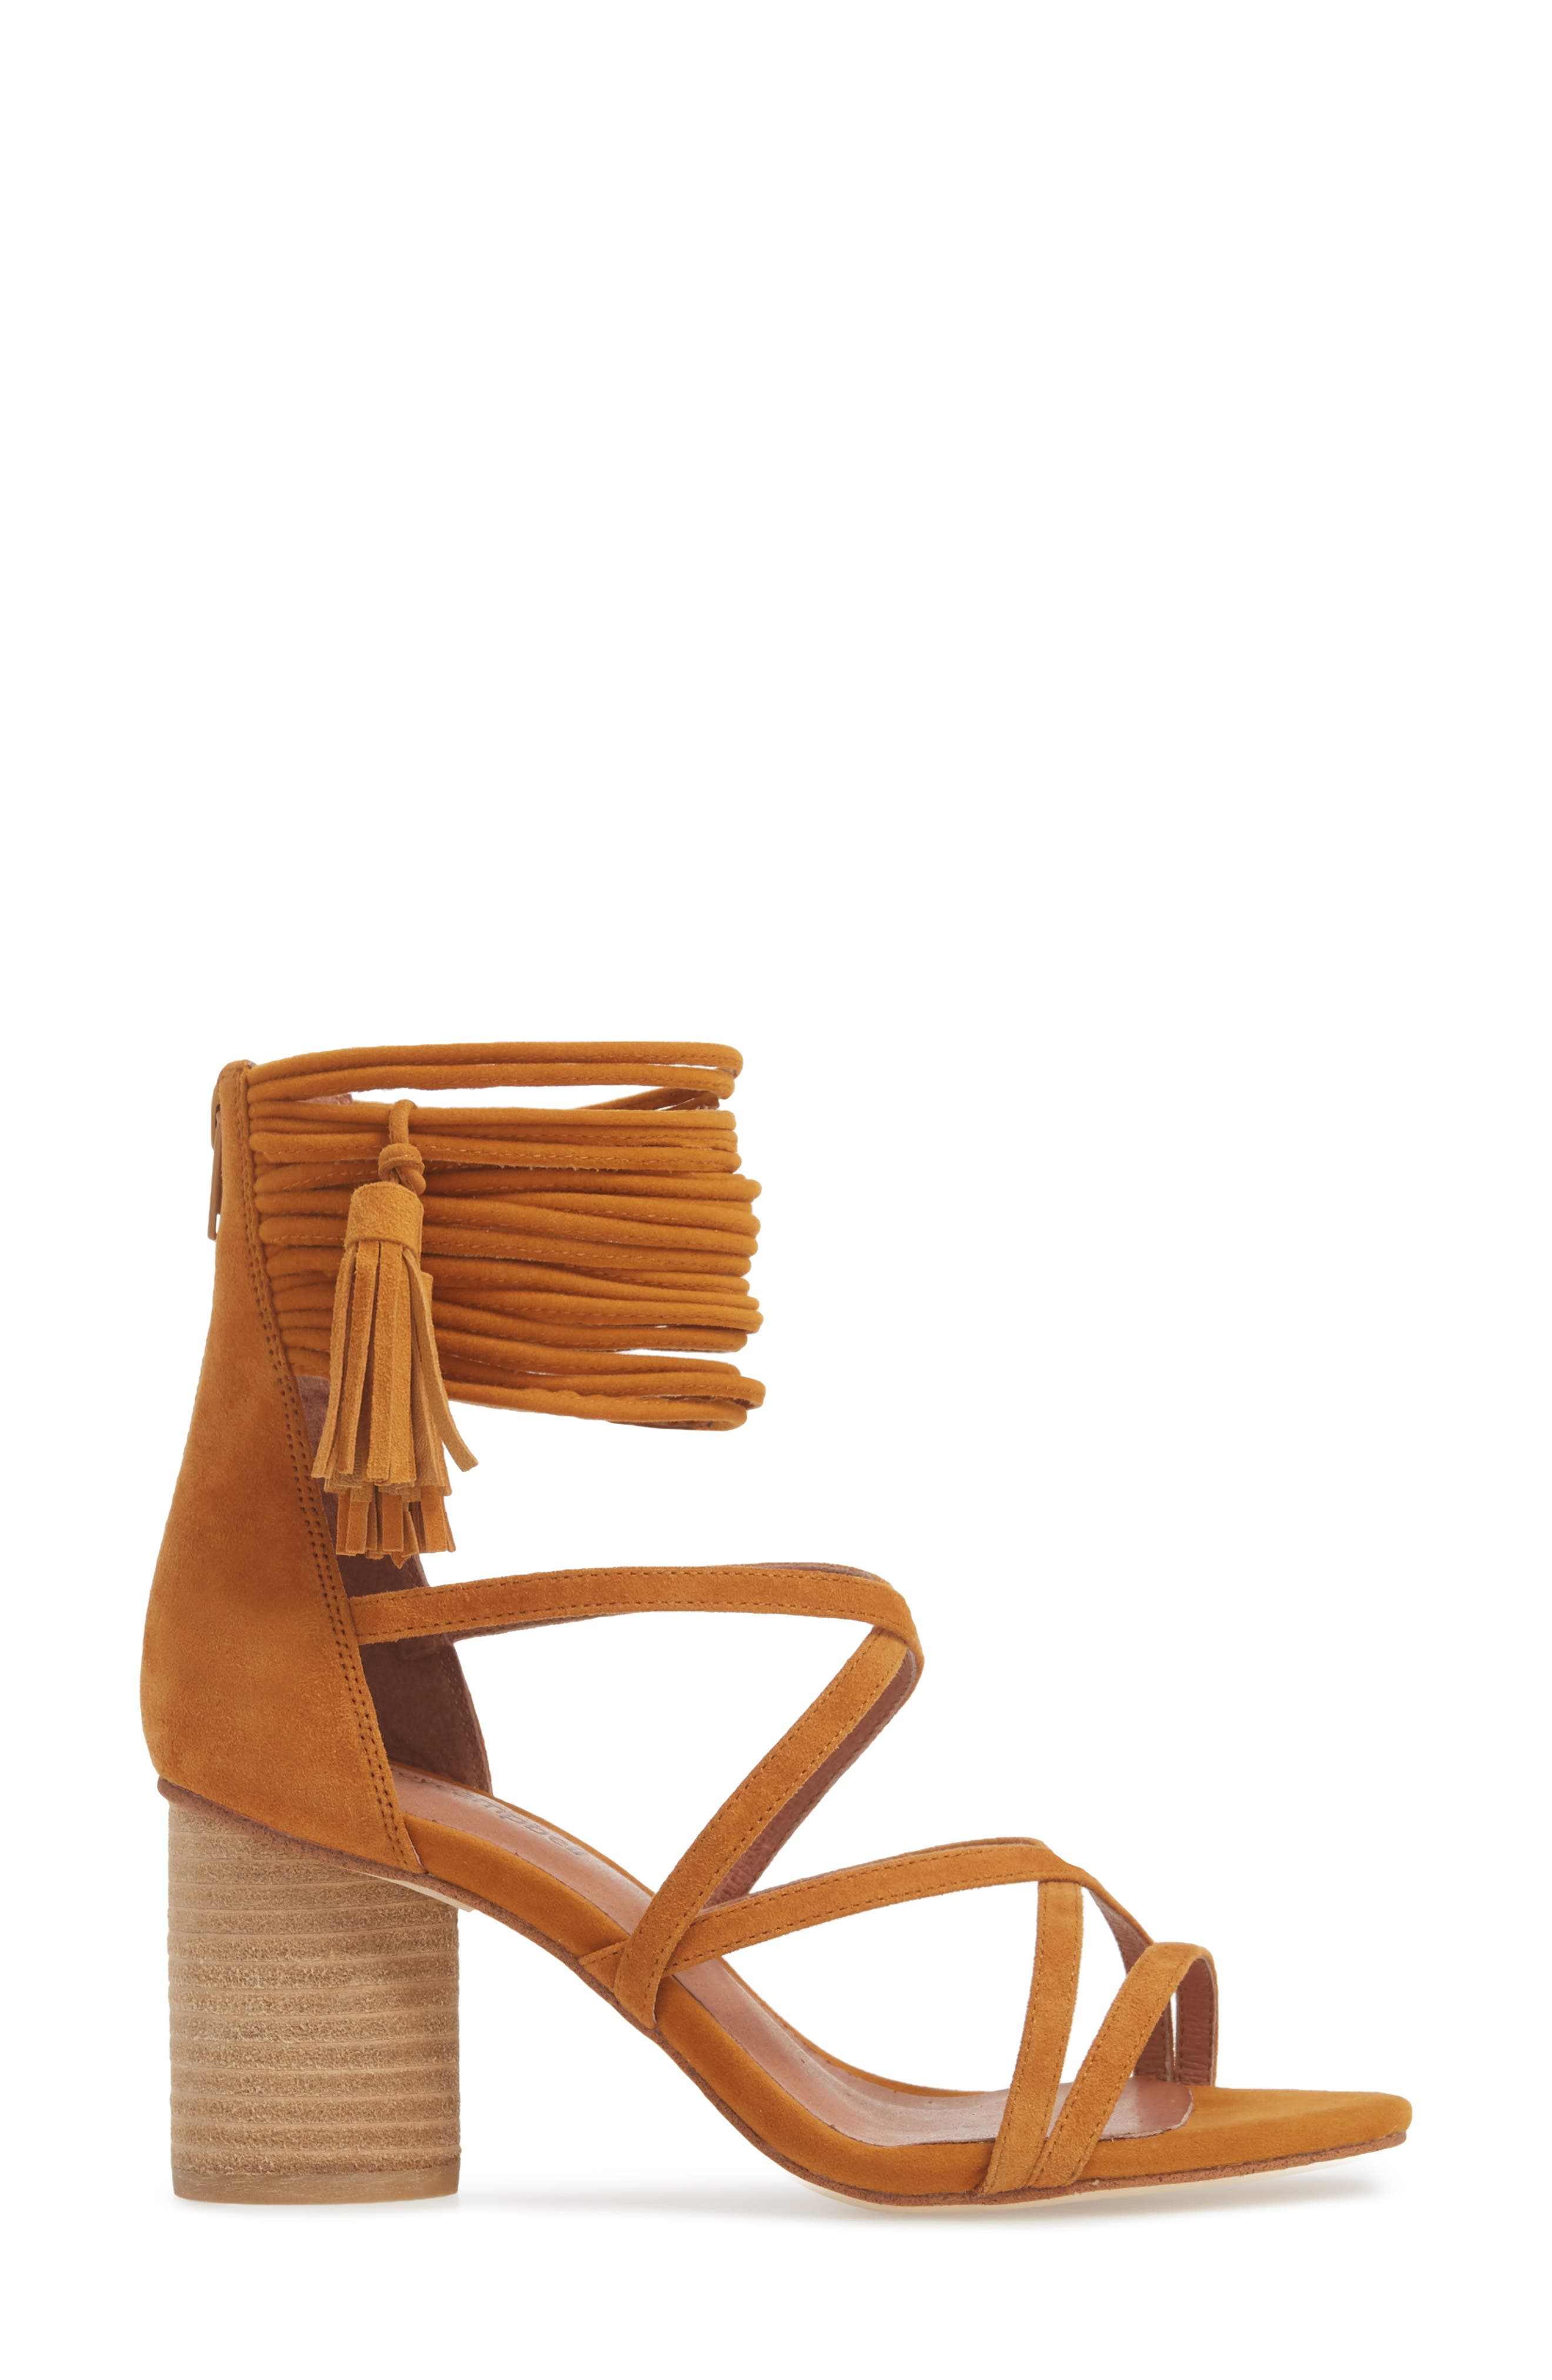 'Despina' Strappy Sandal,                             Alternate thumbnail 5, color,                             Mustard Suede